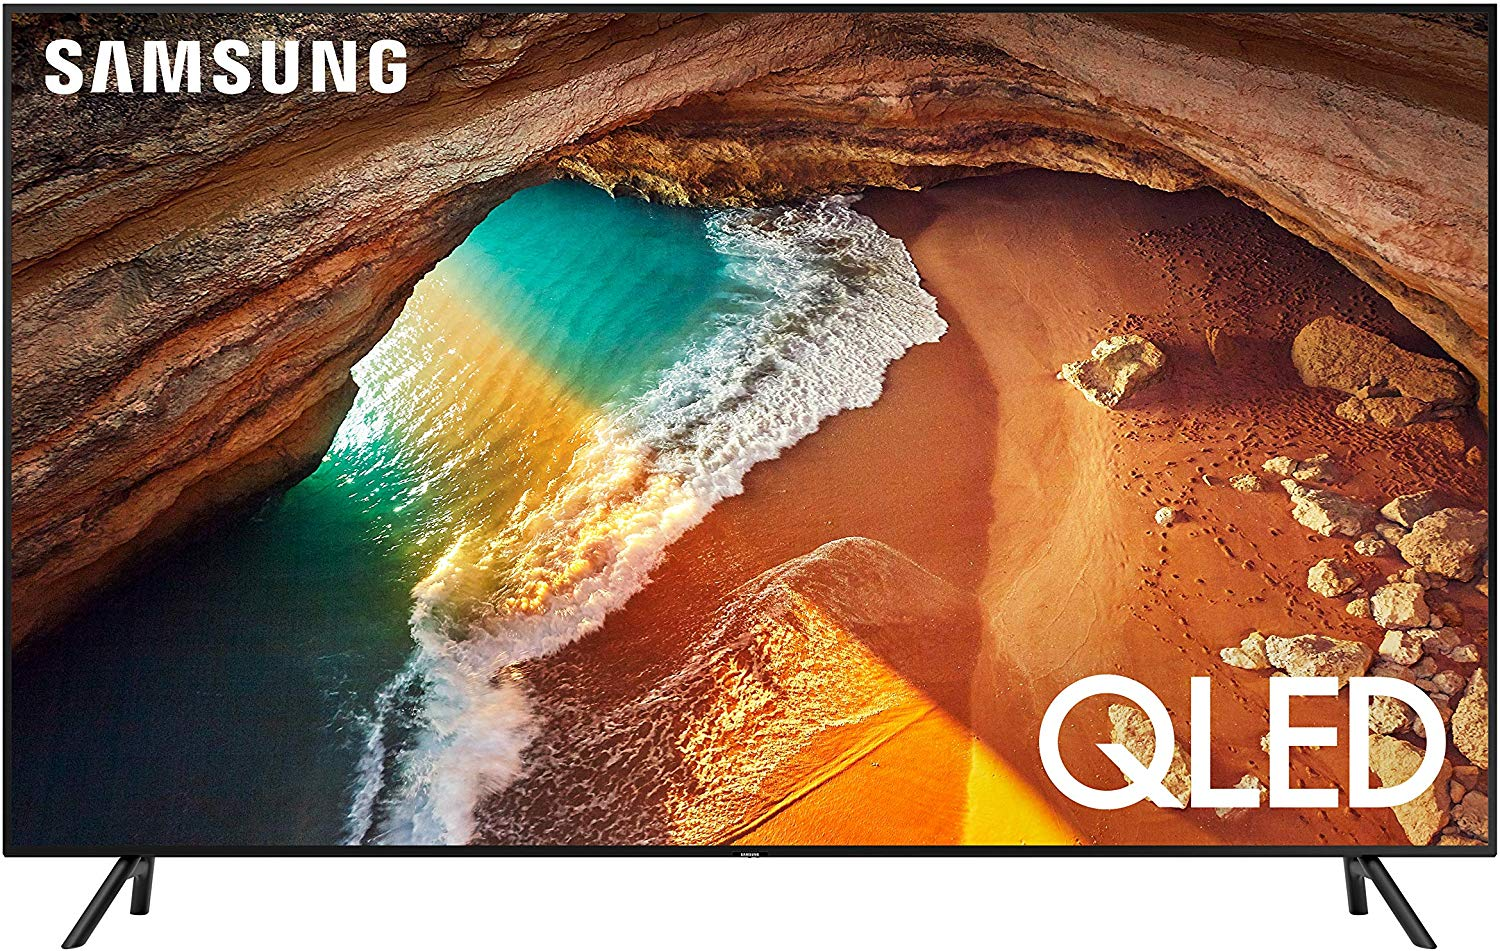 The Samsung 82-Inch Q60R QLED 4K UltraHD TV is Almost 50% Off, Buy It for $2000 For the Next Weeks